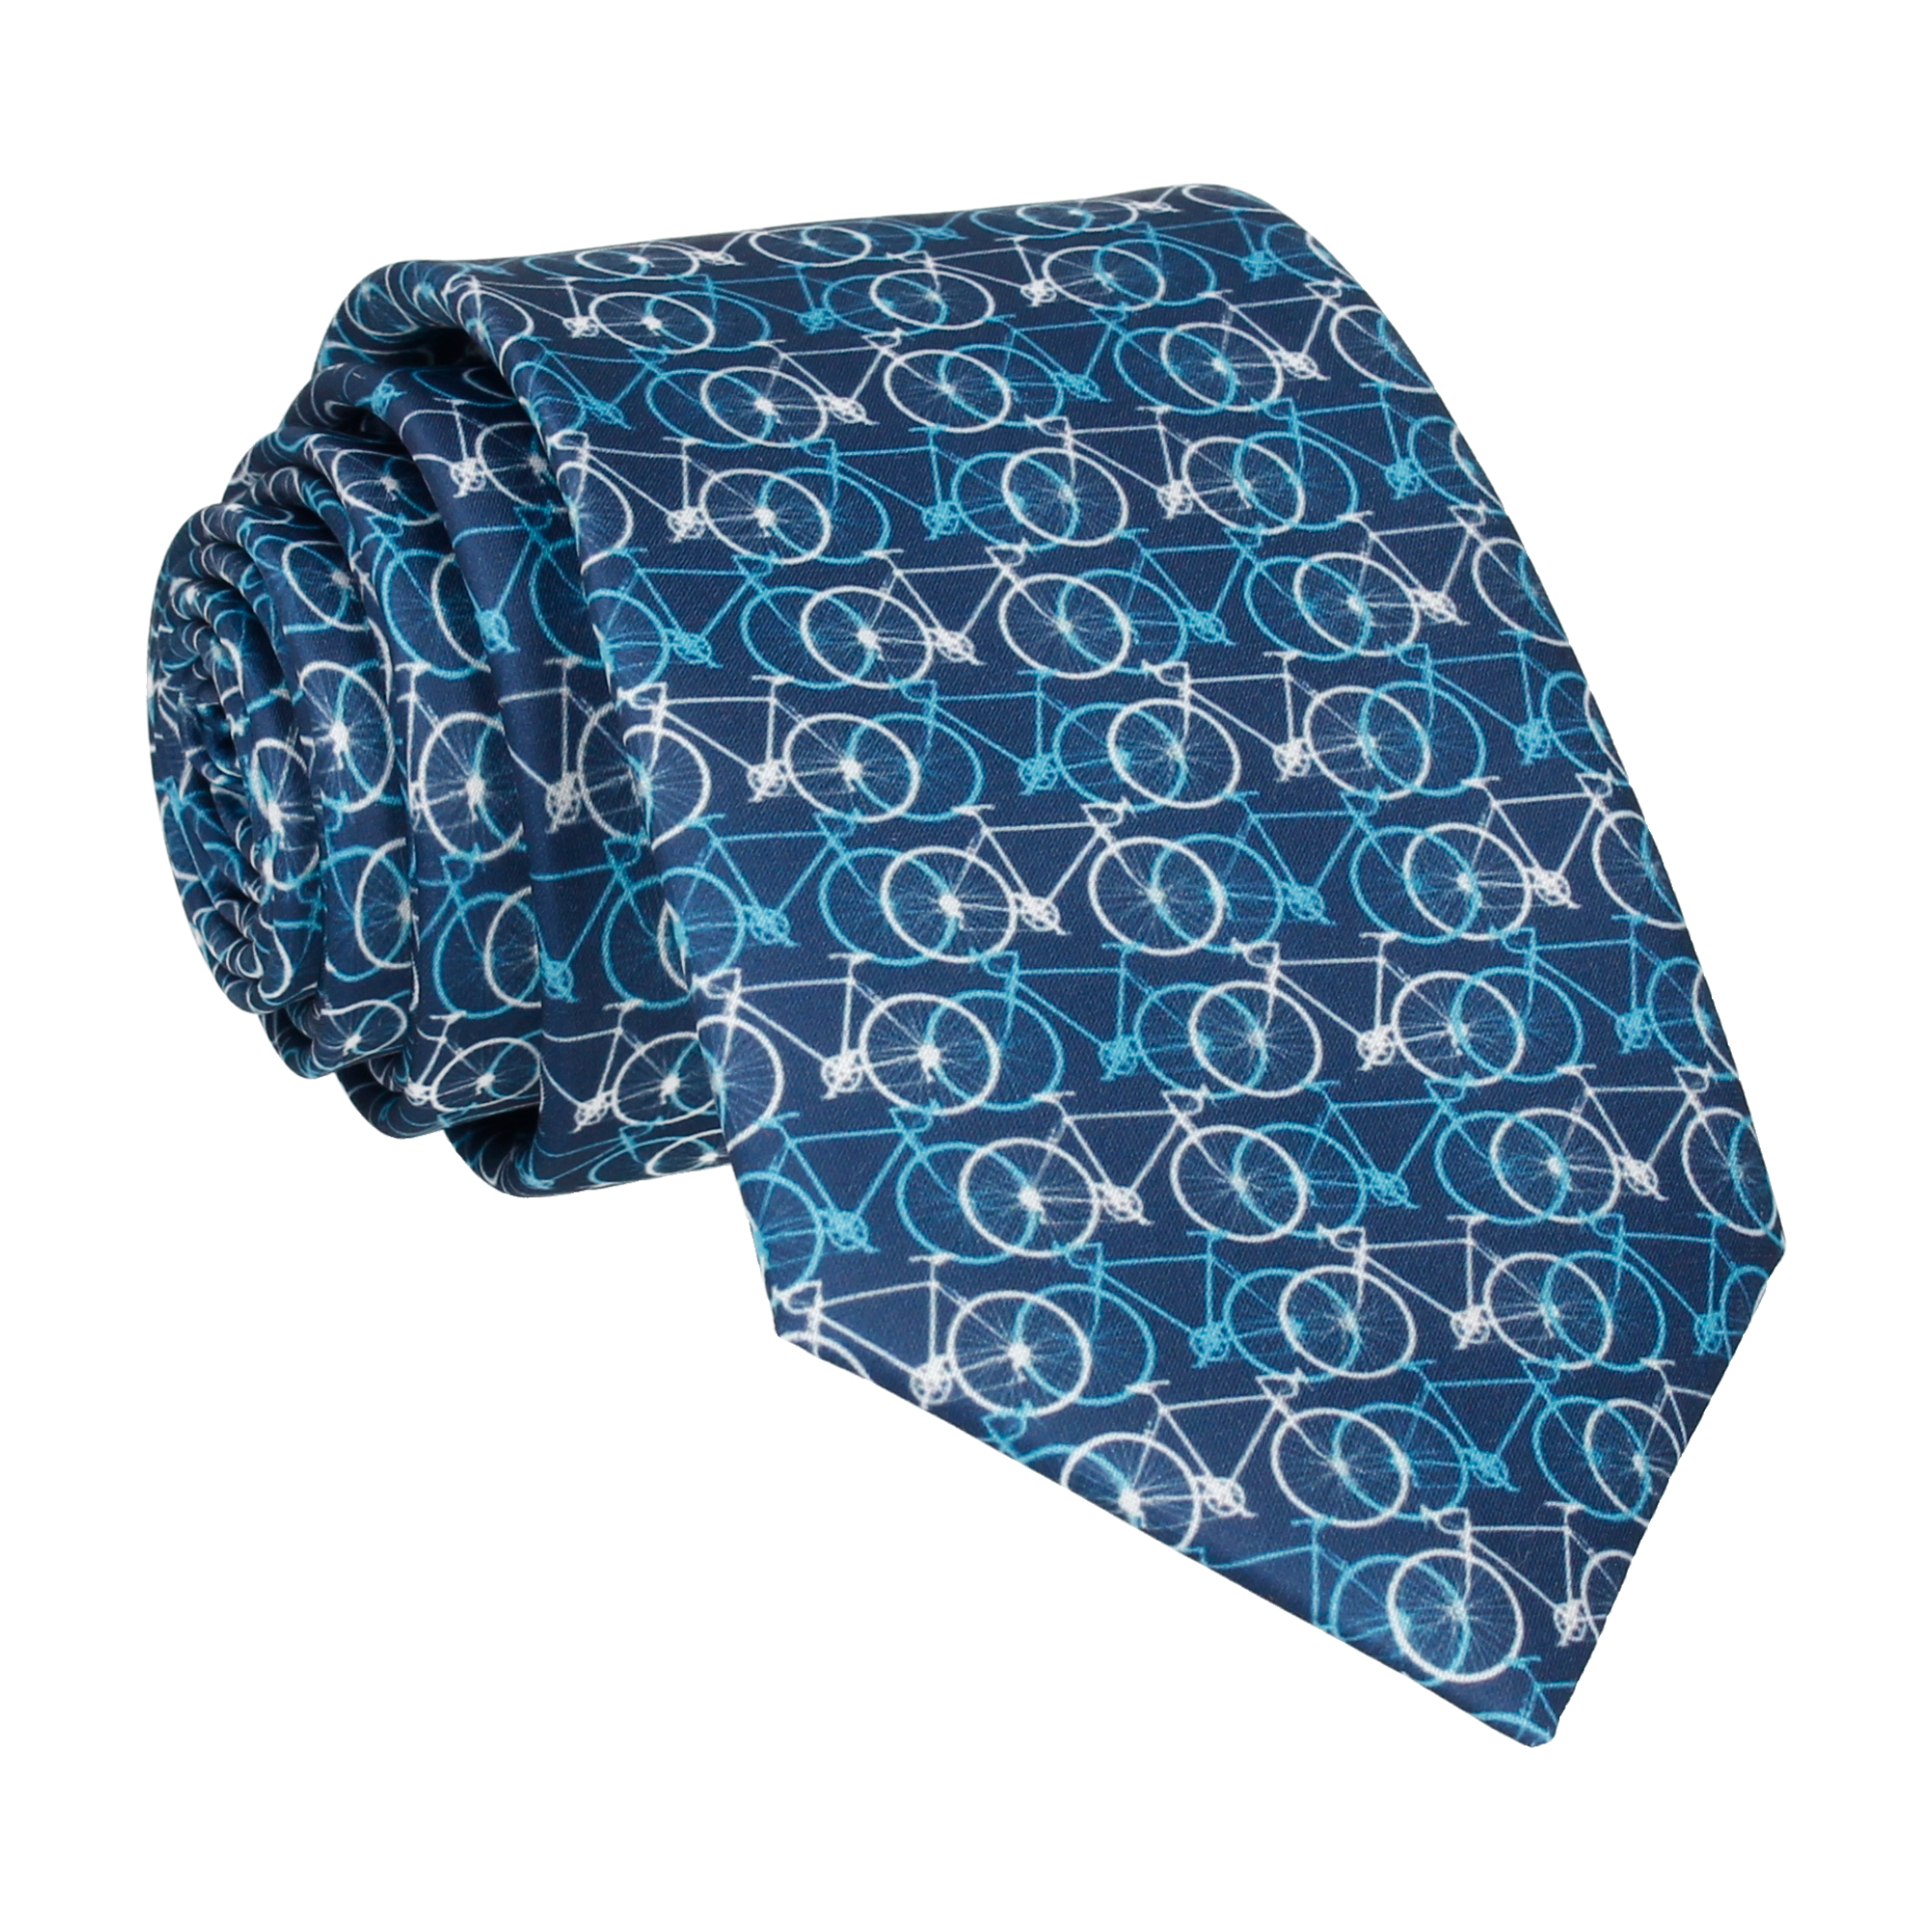 Busy Bicycles Blue & White Tie